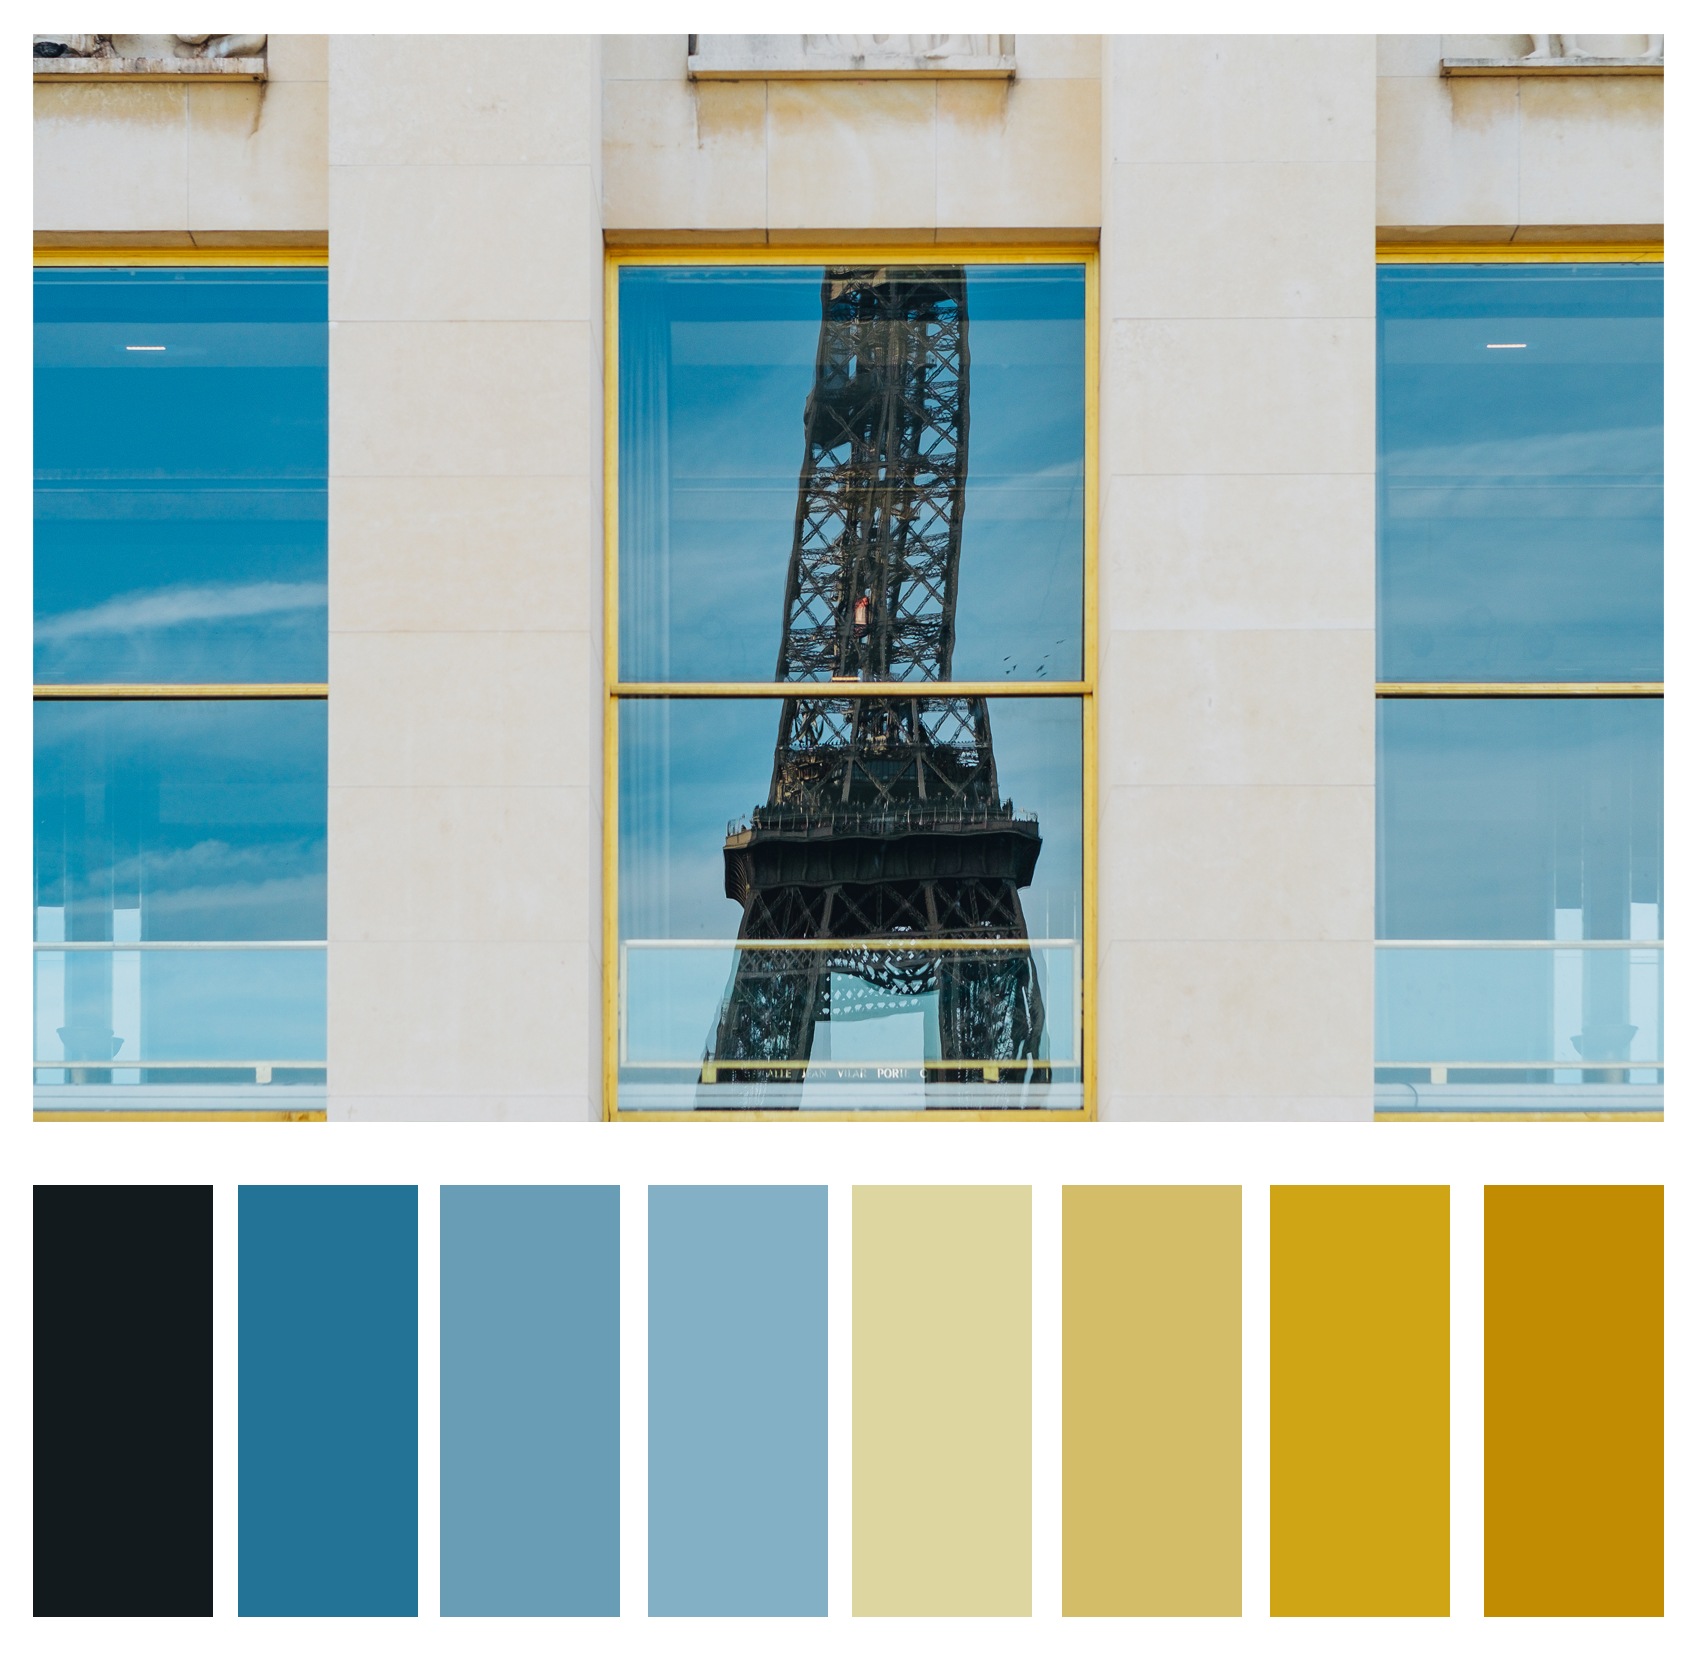 Figure 3a: Tones of blues and yellows complement each other.